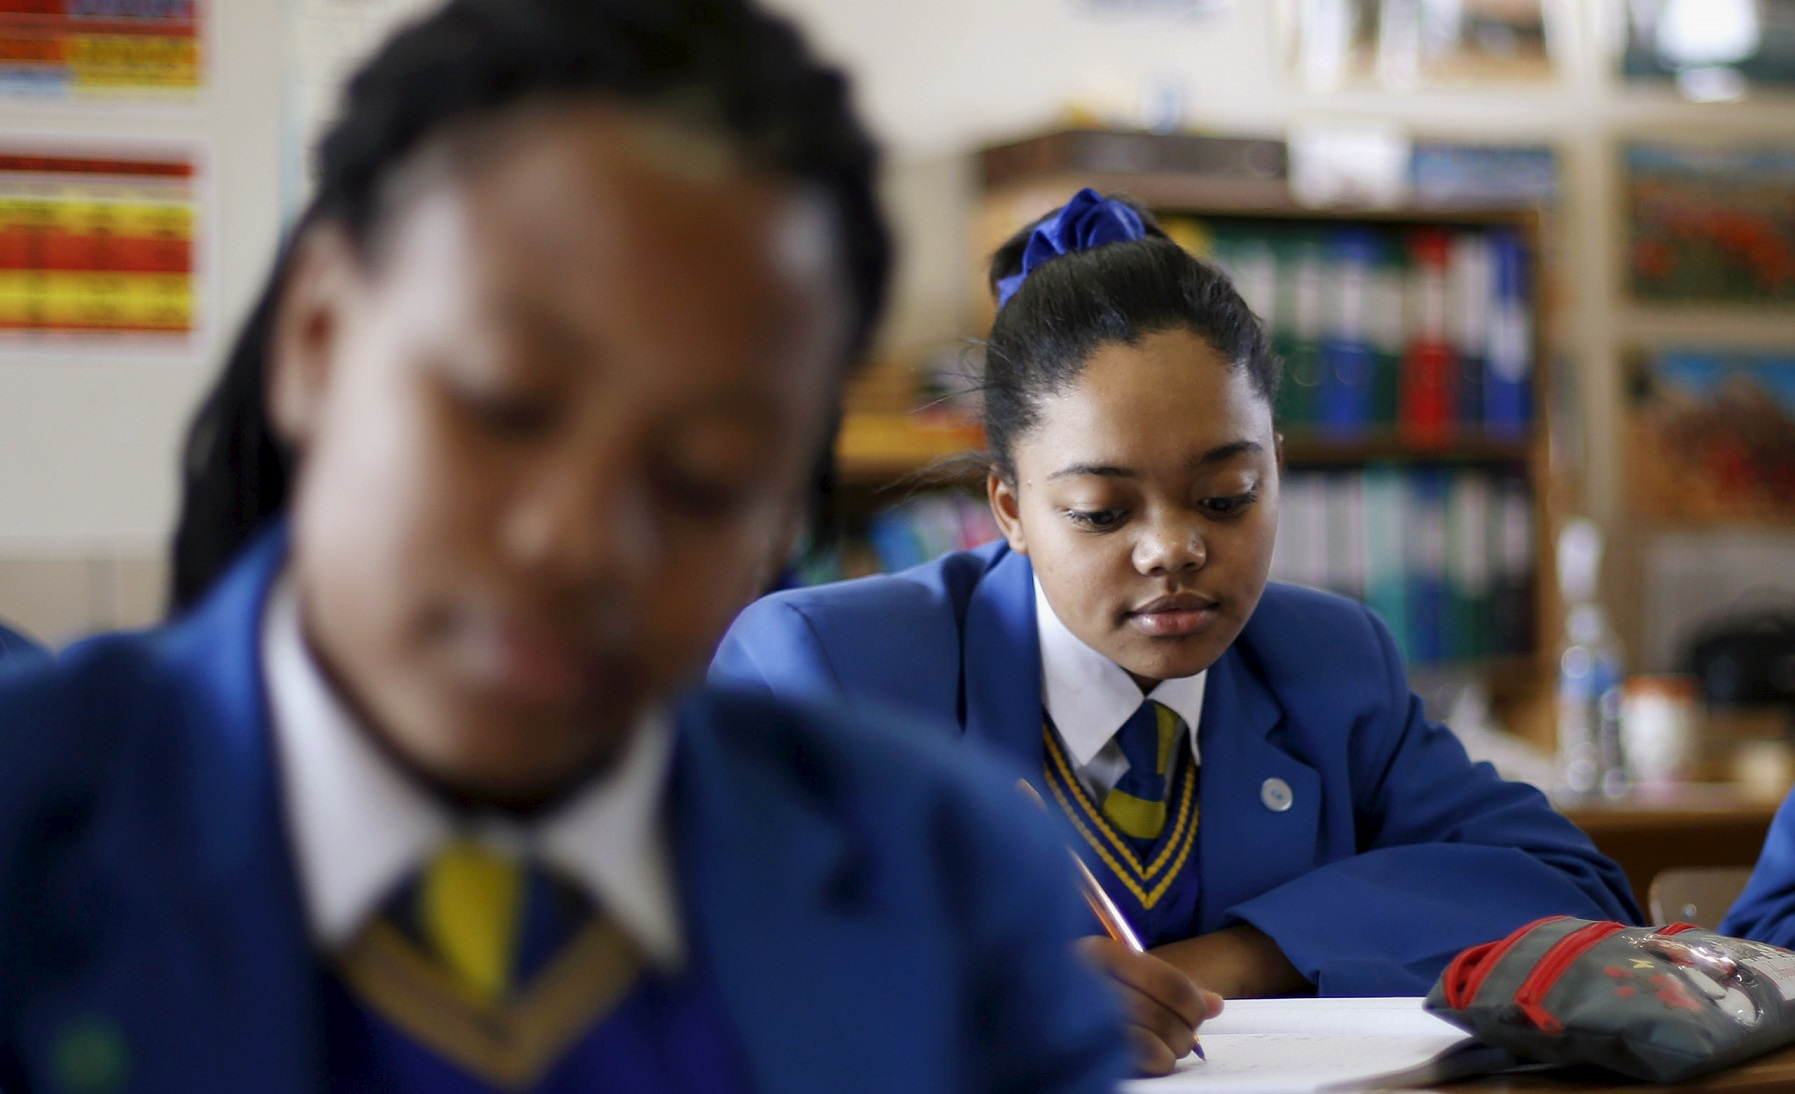 """School children attend class at Waterstone College, a private school managed by Curro in the south of Johannesburg July 22, 2015. South African private education group Advtech rejected a takeover offer from its bigger rival Curro Holdings, saying on Tuesday the proposal contained """"unacceptable pre-conditions"""". Advtech's shares fell more than 7 percent shortly after the announcement that it had rejected Curro's bid, but pared losses to close down 2.93 percent at 11.60 rand. The shares are up about 30 percent so far this year. Curro's stock shed 0.83 percent to close on 11.70 rand. REUTERS/Siphiwe Sibeko  - GF10000166735"""